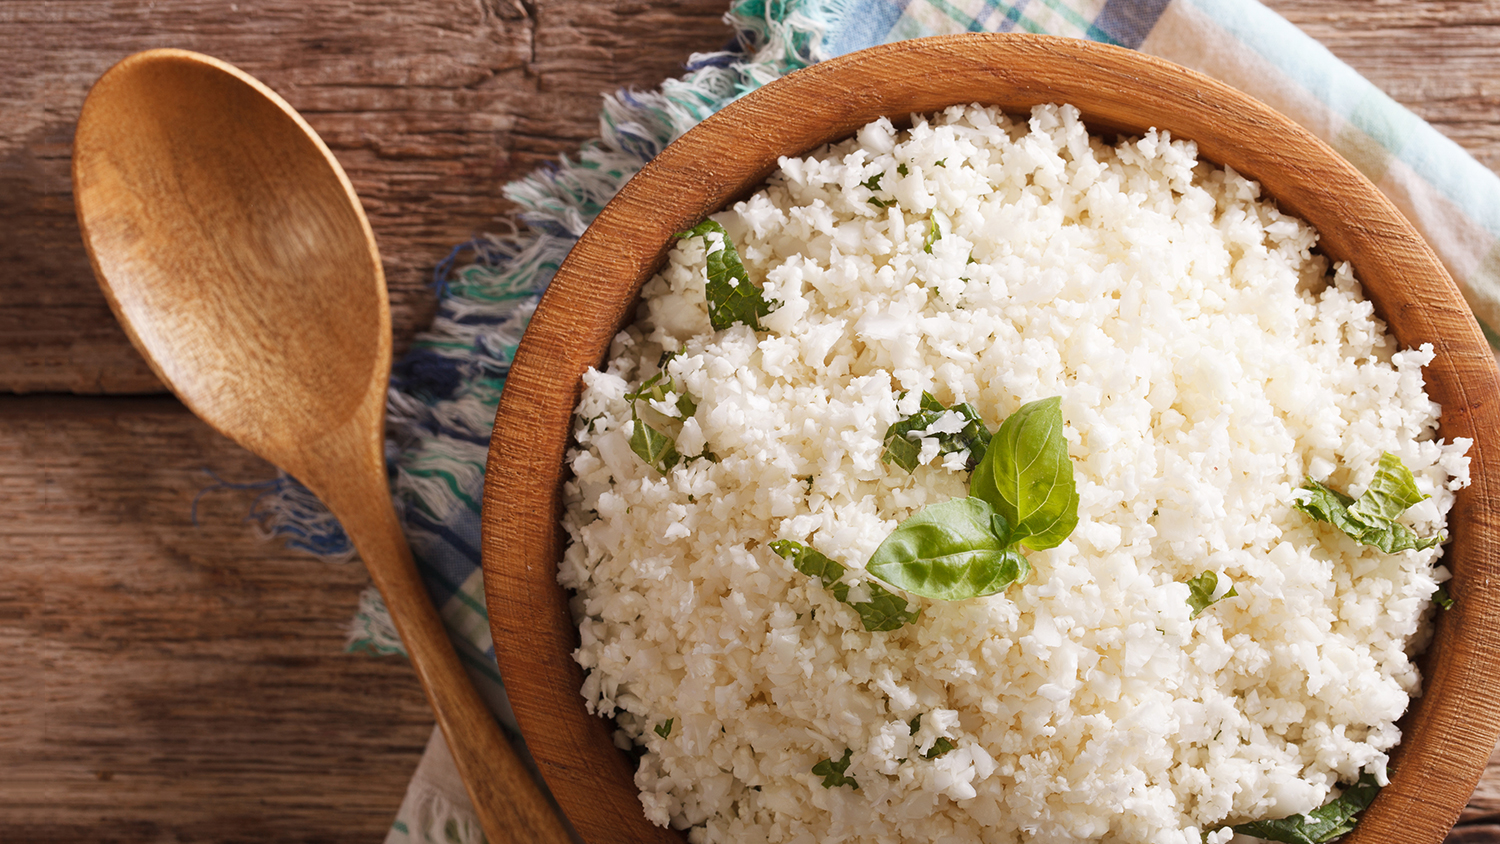 Cauliflower Rice vs. Classic: Which is Right for You?